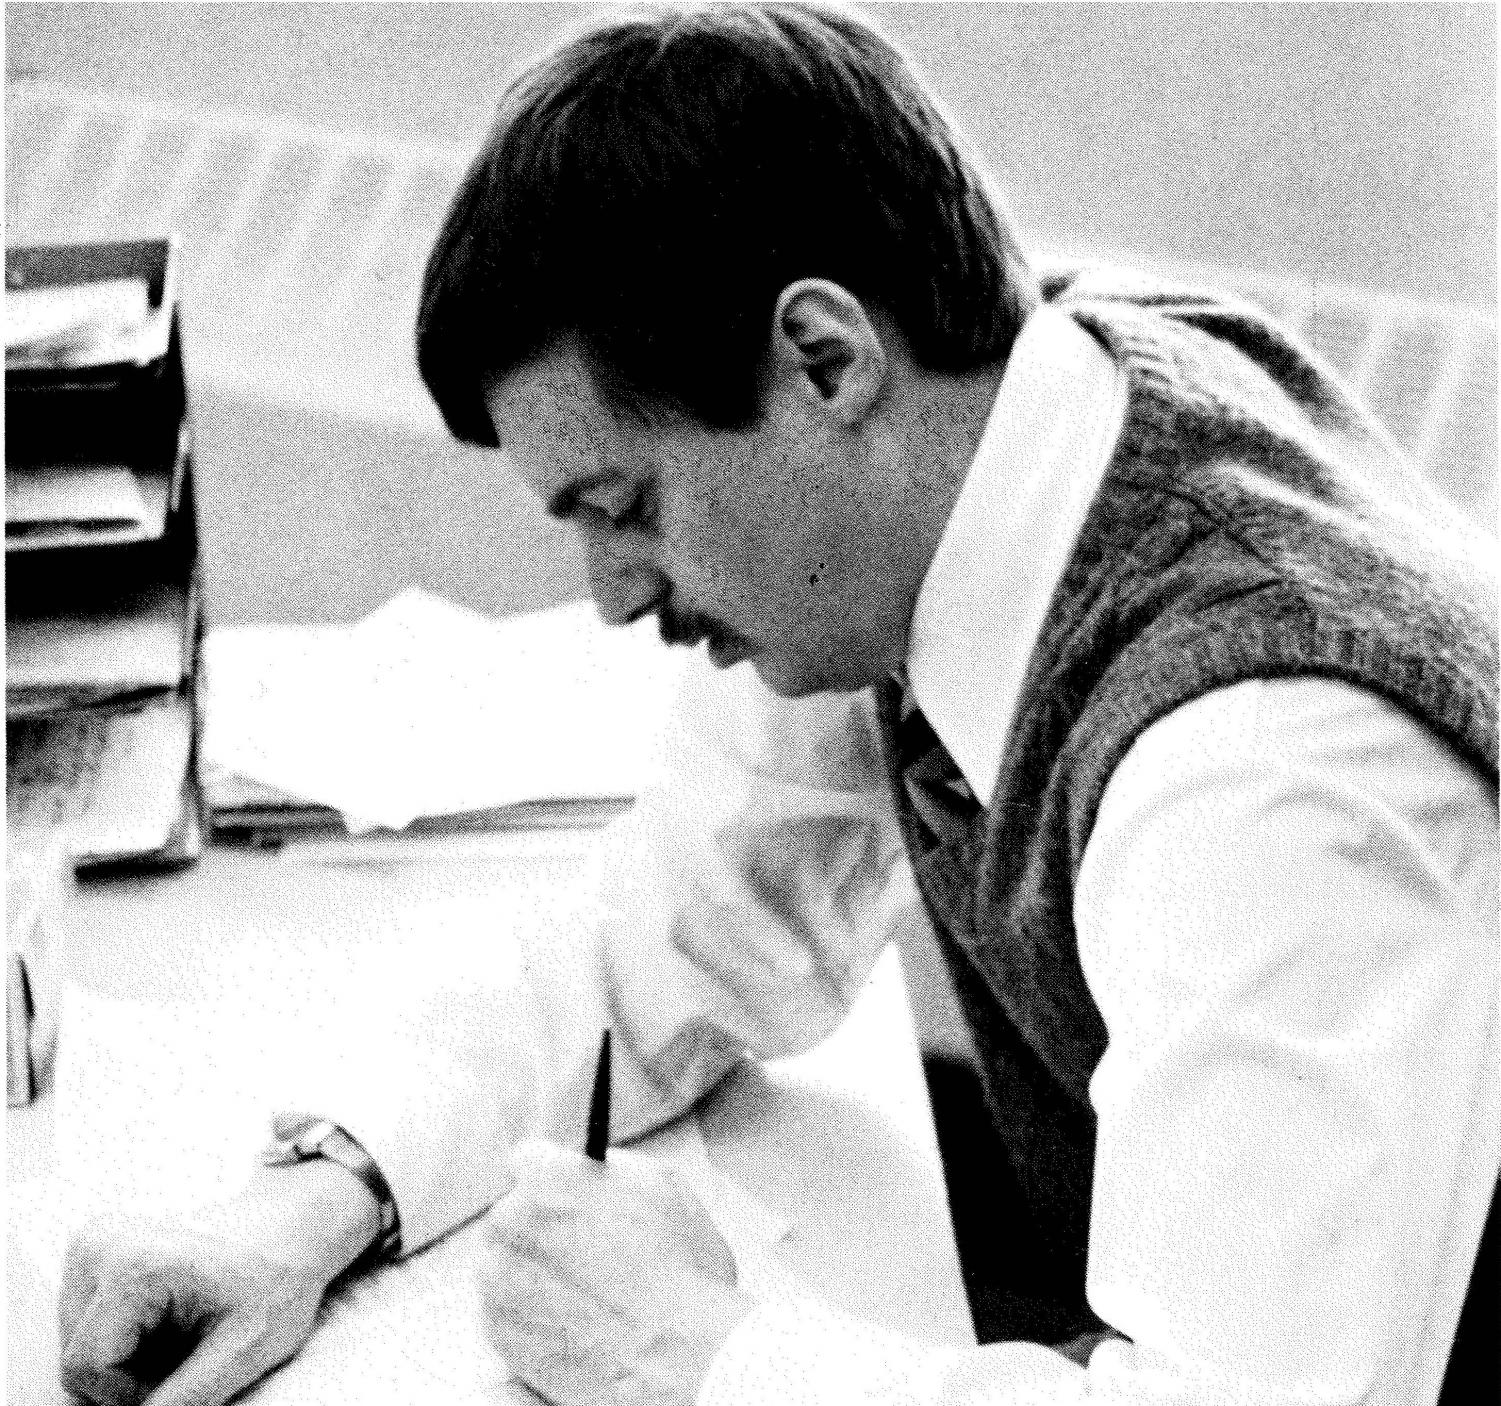 Mr. Hardy, grading papers in 1986, his first year at Seattle Prep.